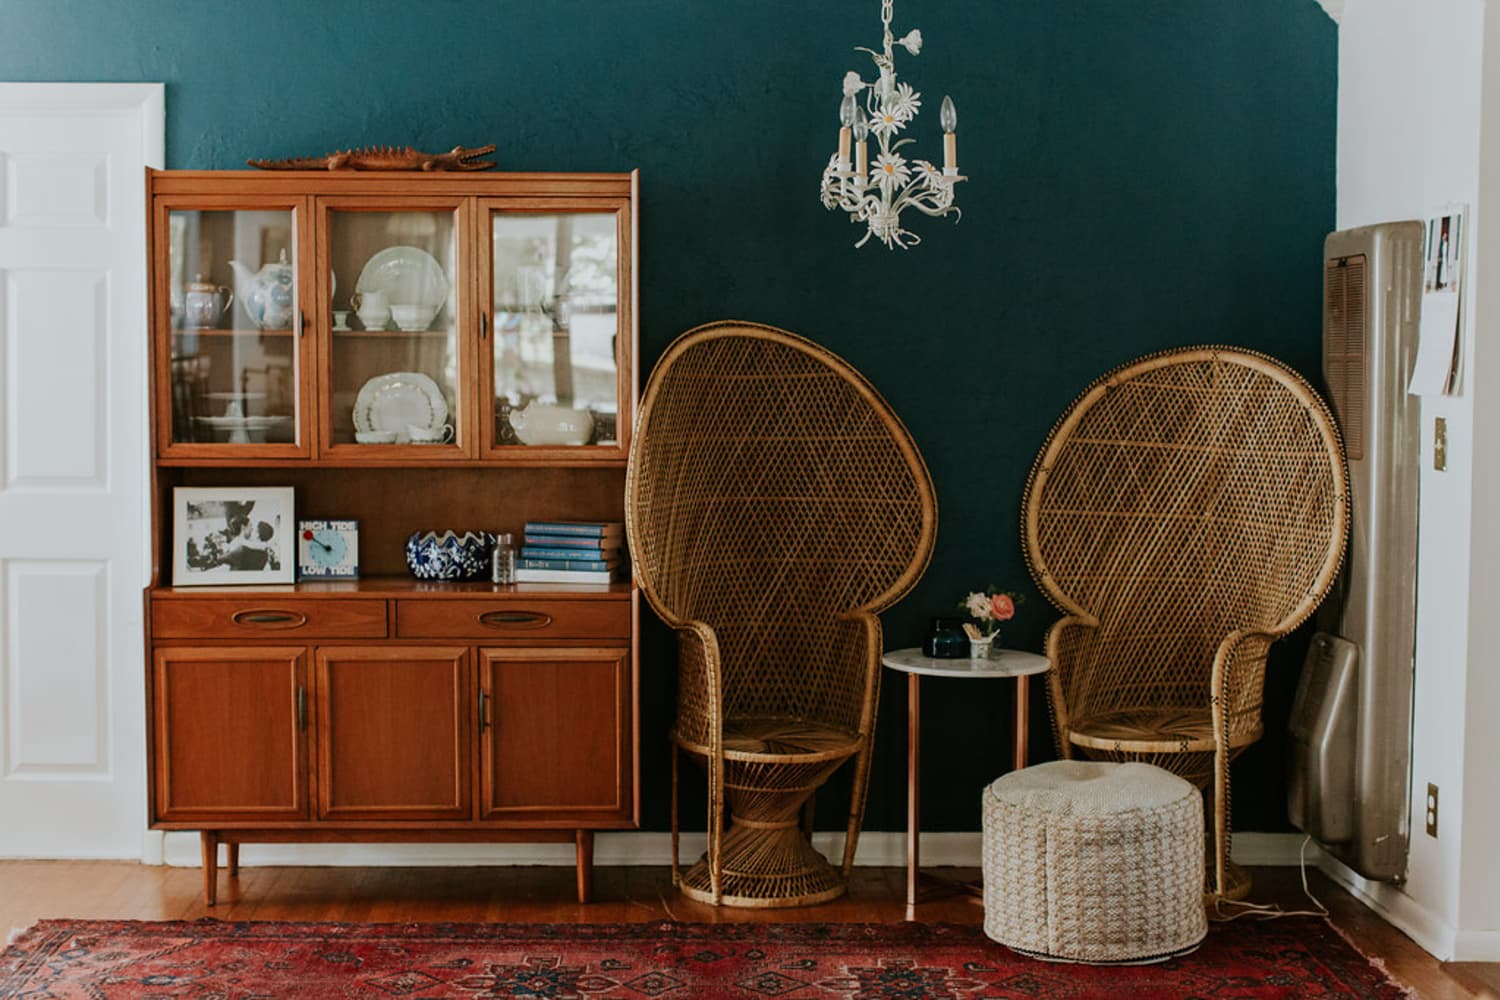 Shop For Vintage Or Refurbished Furniture On Instagram